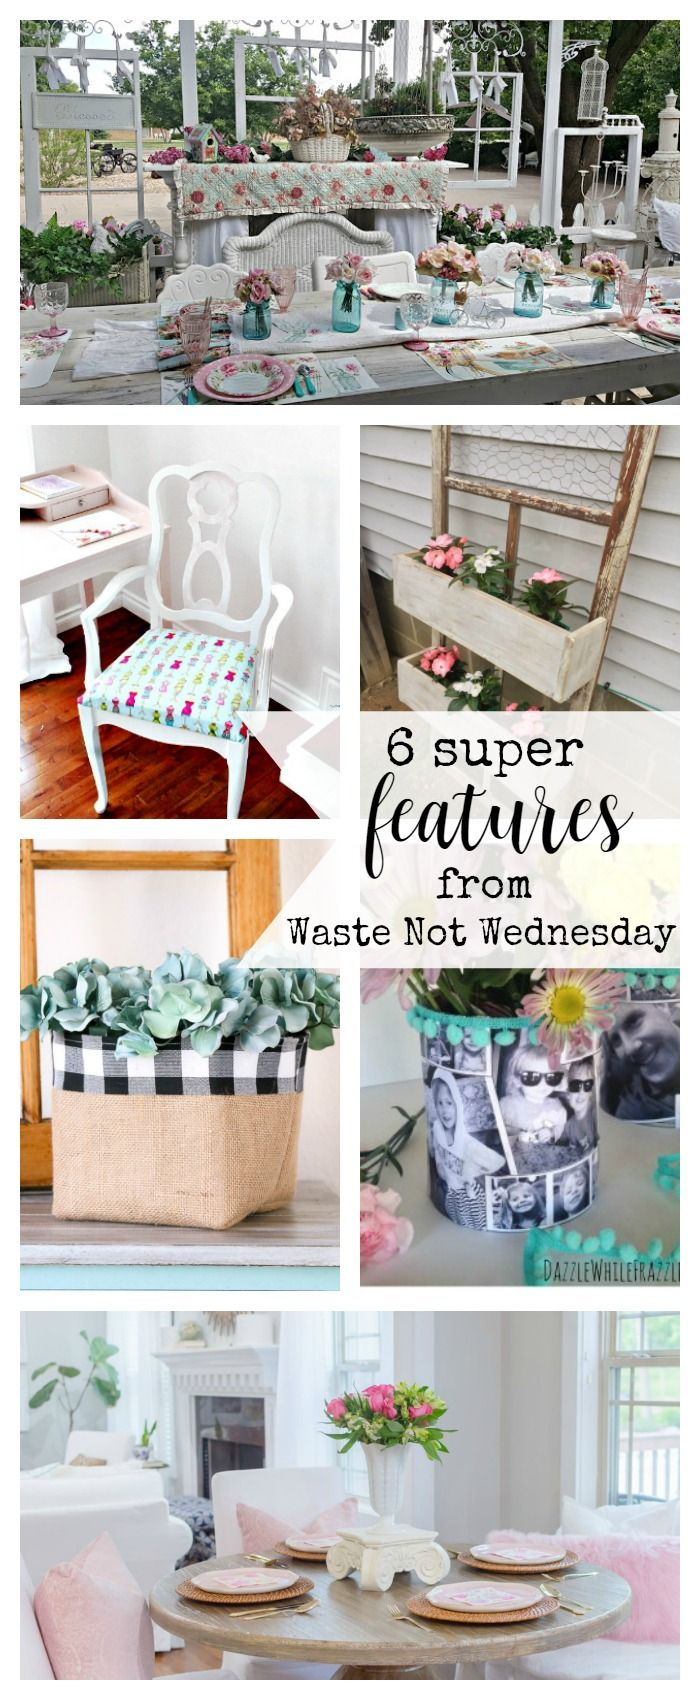 Features from our fun Waste Not Wednesday-50 DIY, Craft, Home Decor and Recipe party this week! Be sure to join us and share your DIY, Craft, Home Decor and favourite recipes!   www.raggedy-bits.com   www.mythriftyhouse.com   www.gratefullyvintage.com   www.salvagesisterandmister.com   www.reinventedkb.com